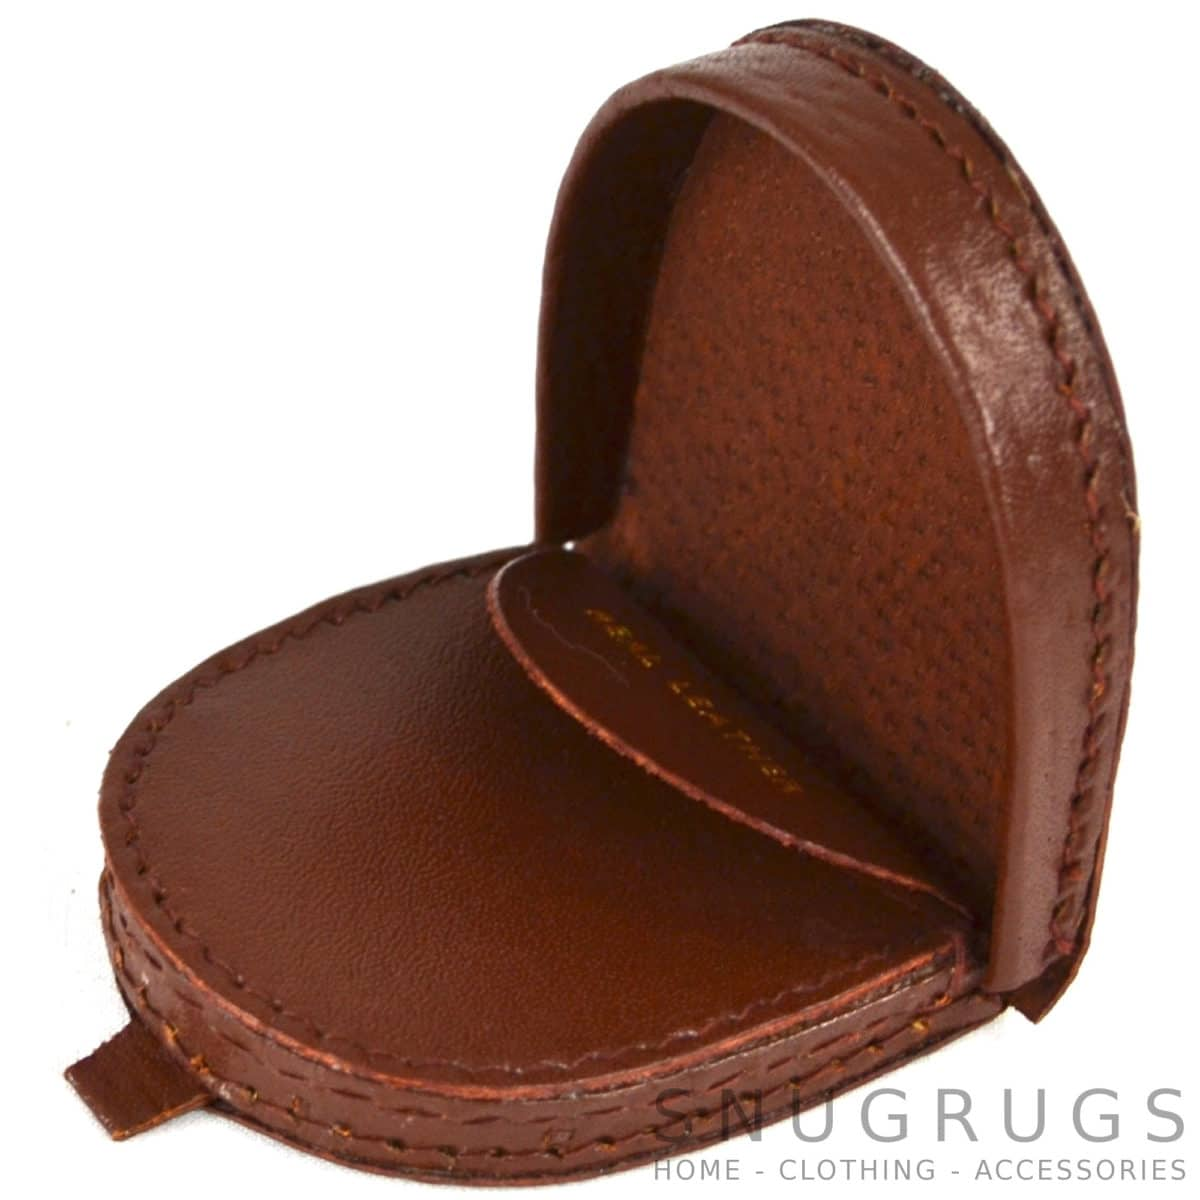 Semi Round Leather Money Tray - Mid Brown